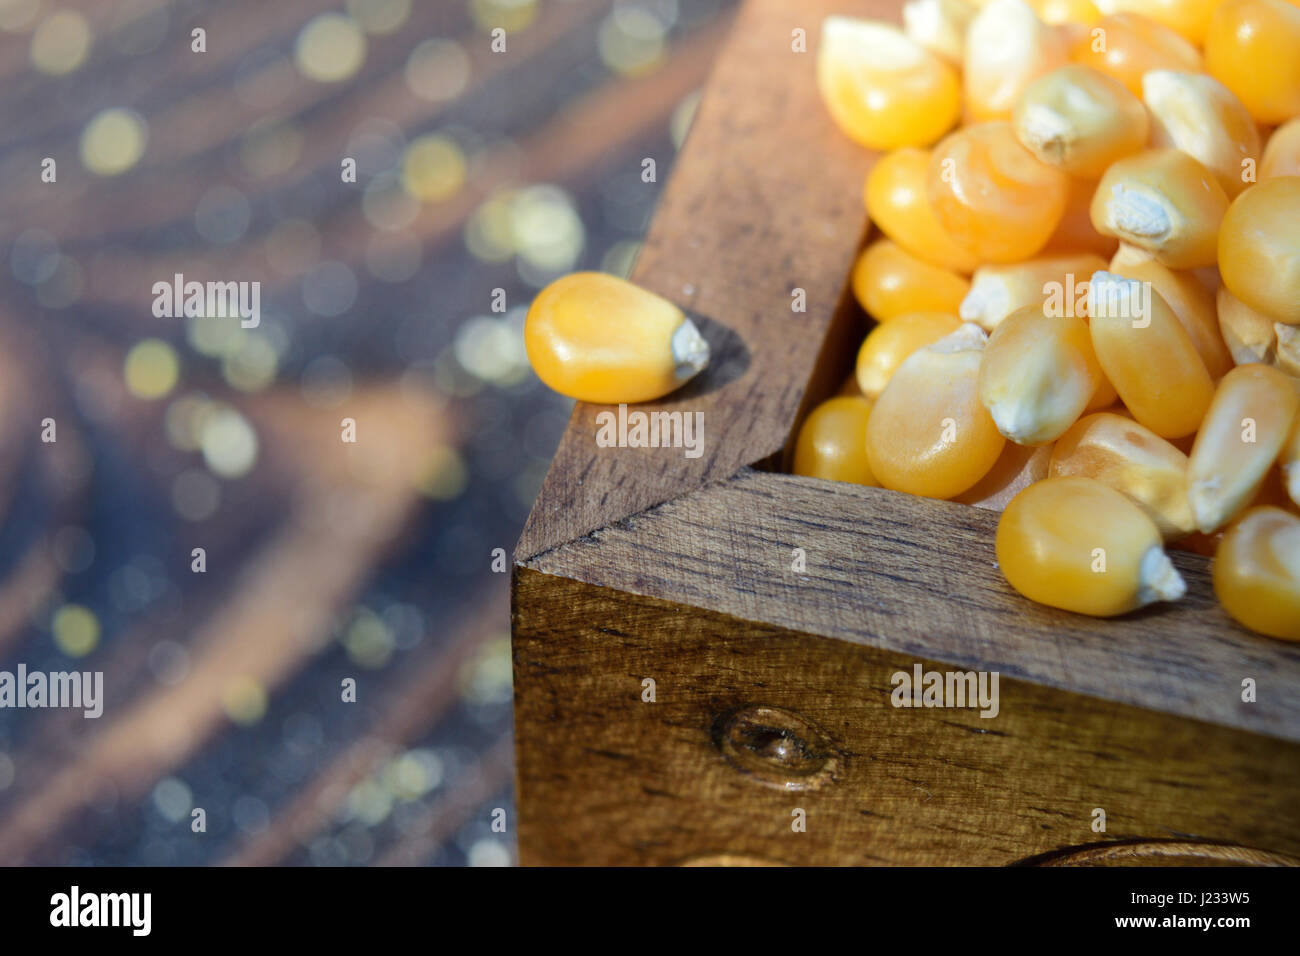 A corn bean on the edge of a wooden chest full of corn beans. Natural light, wooden table. - Stock Image